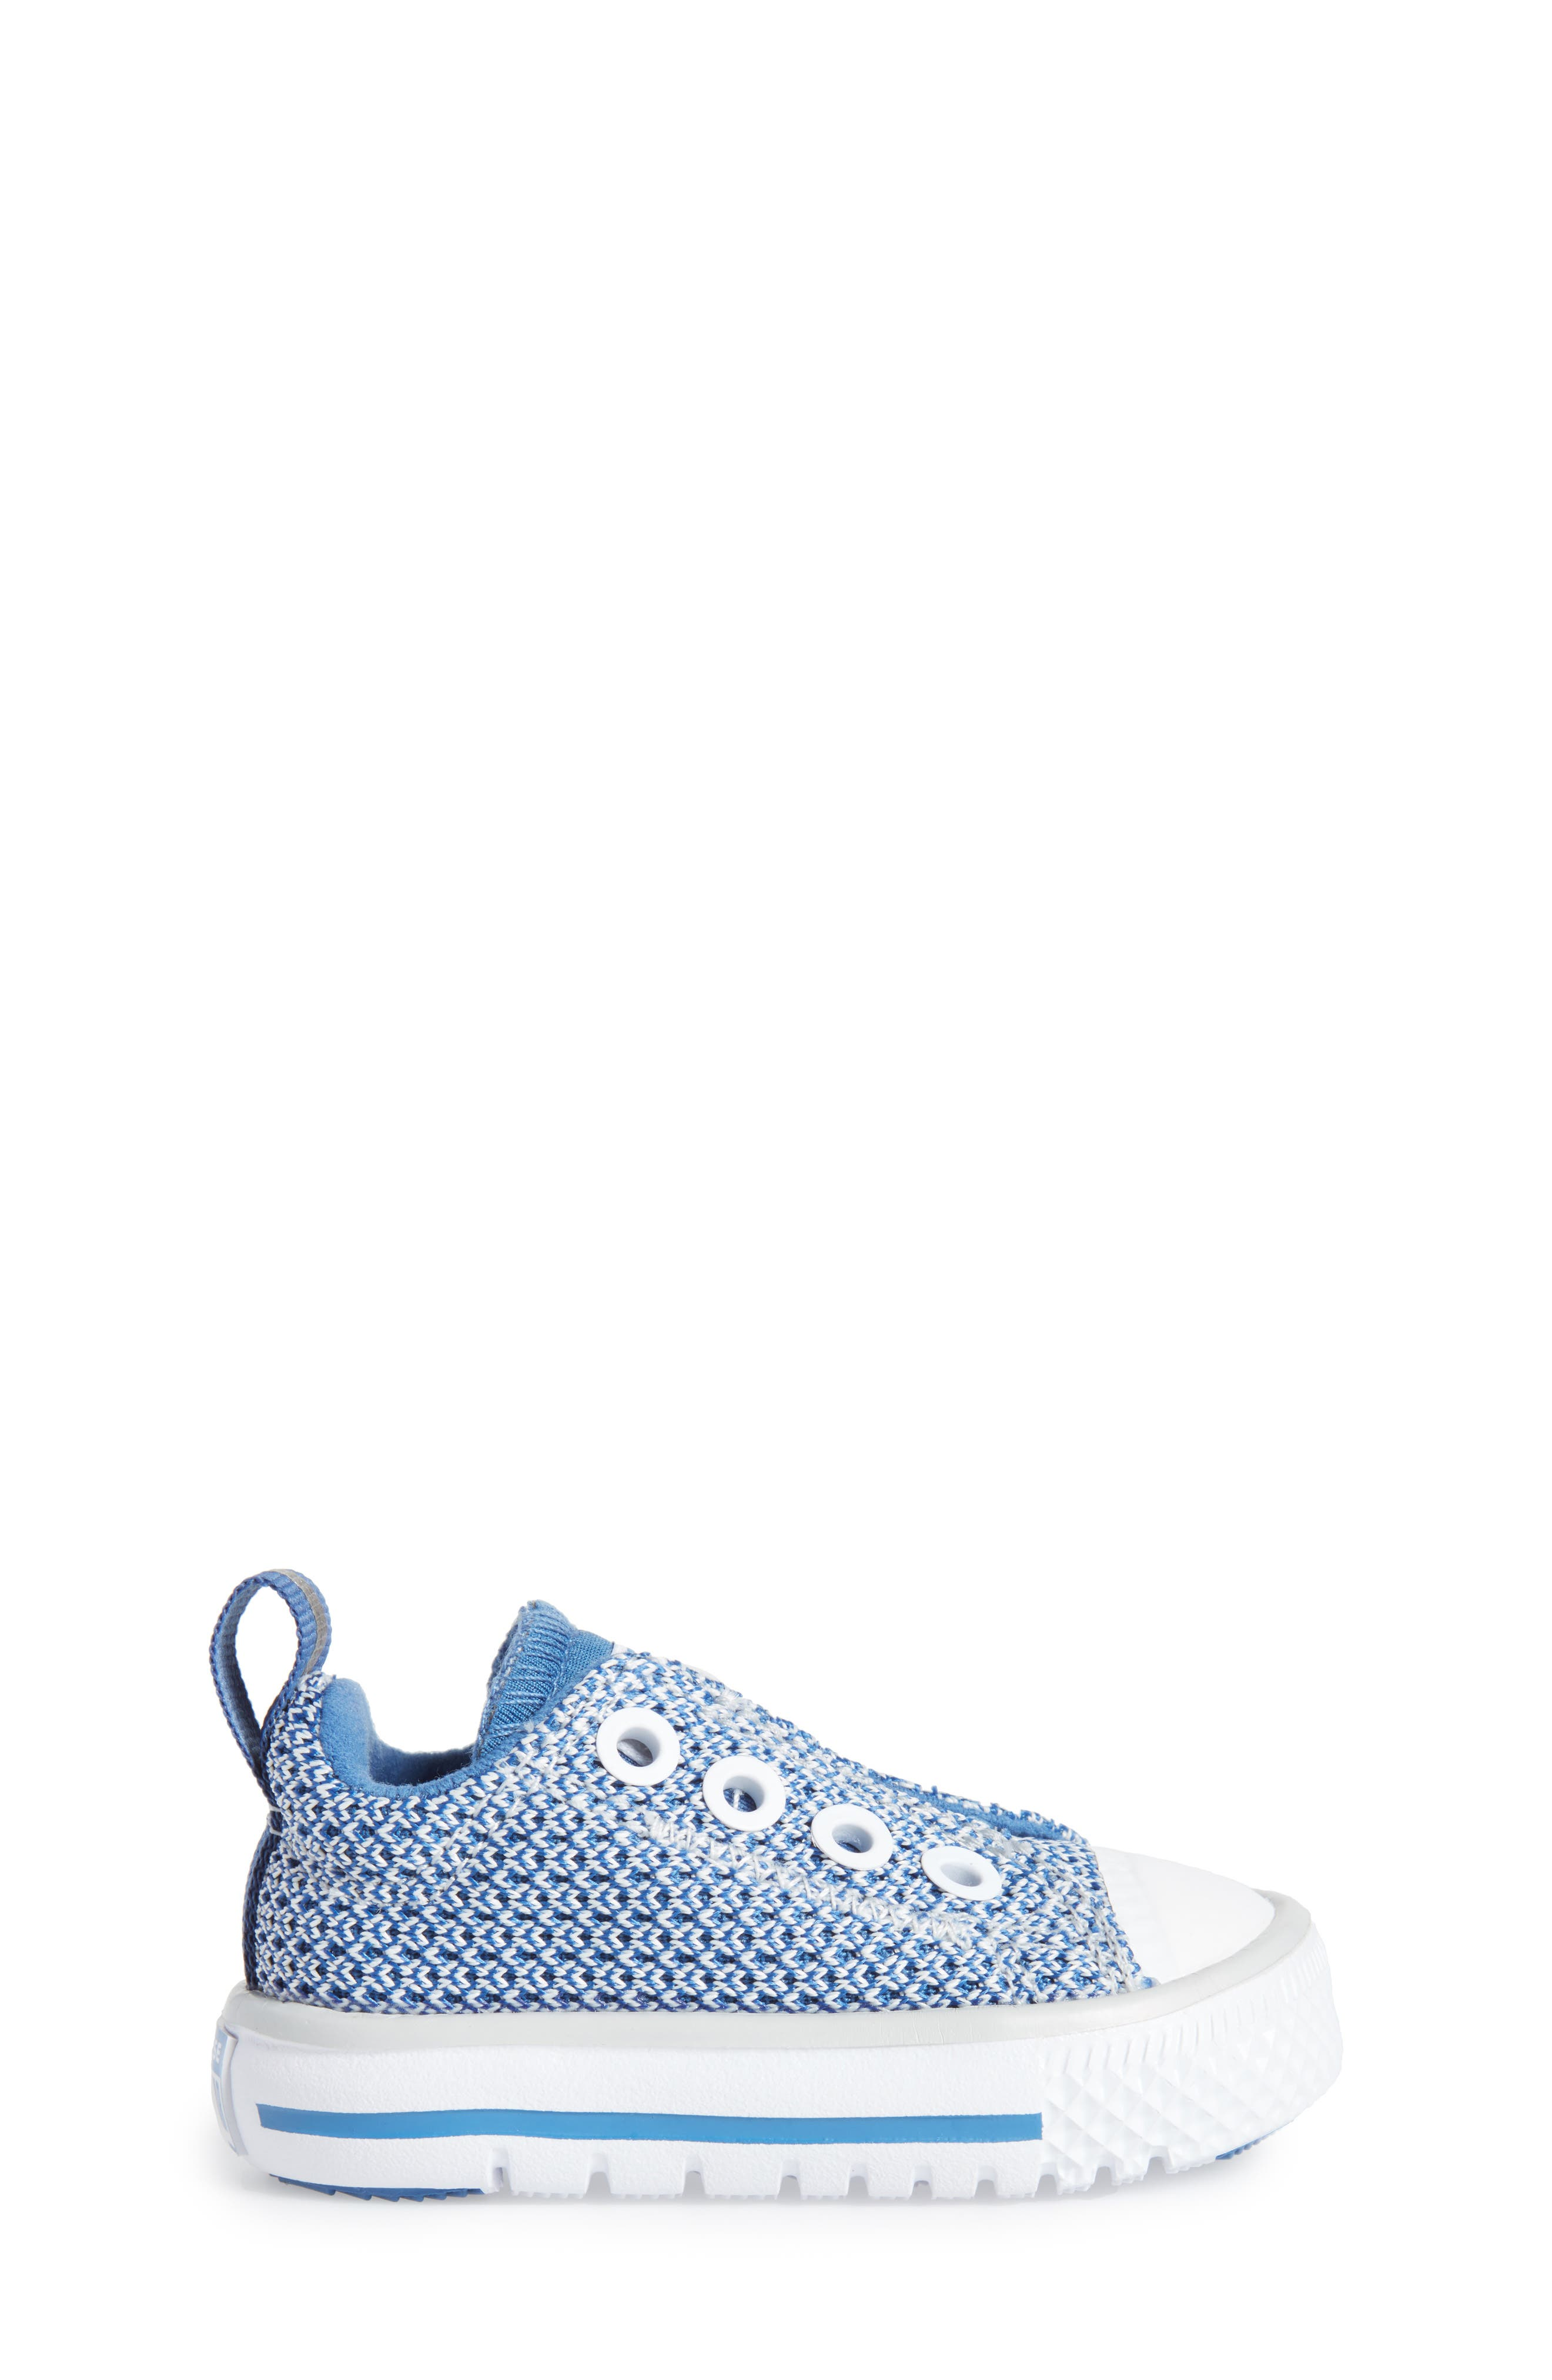 Chuck Taylor<sup>®</sup> All Star<sup>®</sup> Hyper Lite Slip-On Sneaker,                             Alternate thumbnail 3, color,                             020